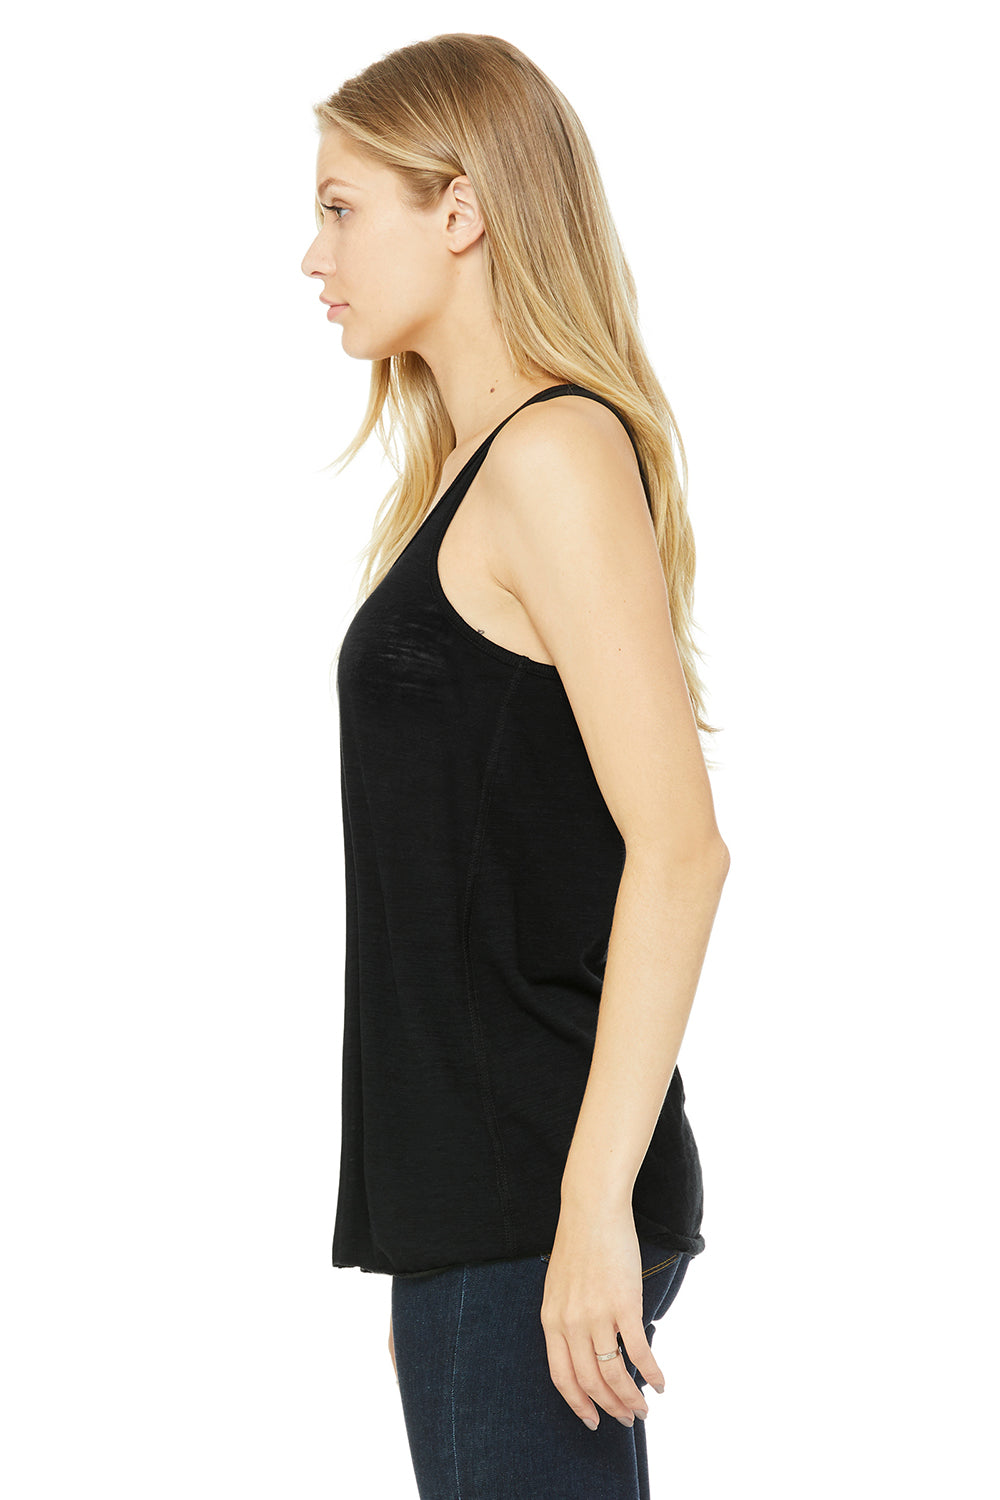 Bella + Canvas B8800 Womens Flowy Tank Top Black Slub Side